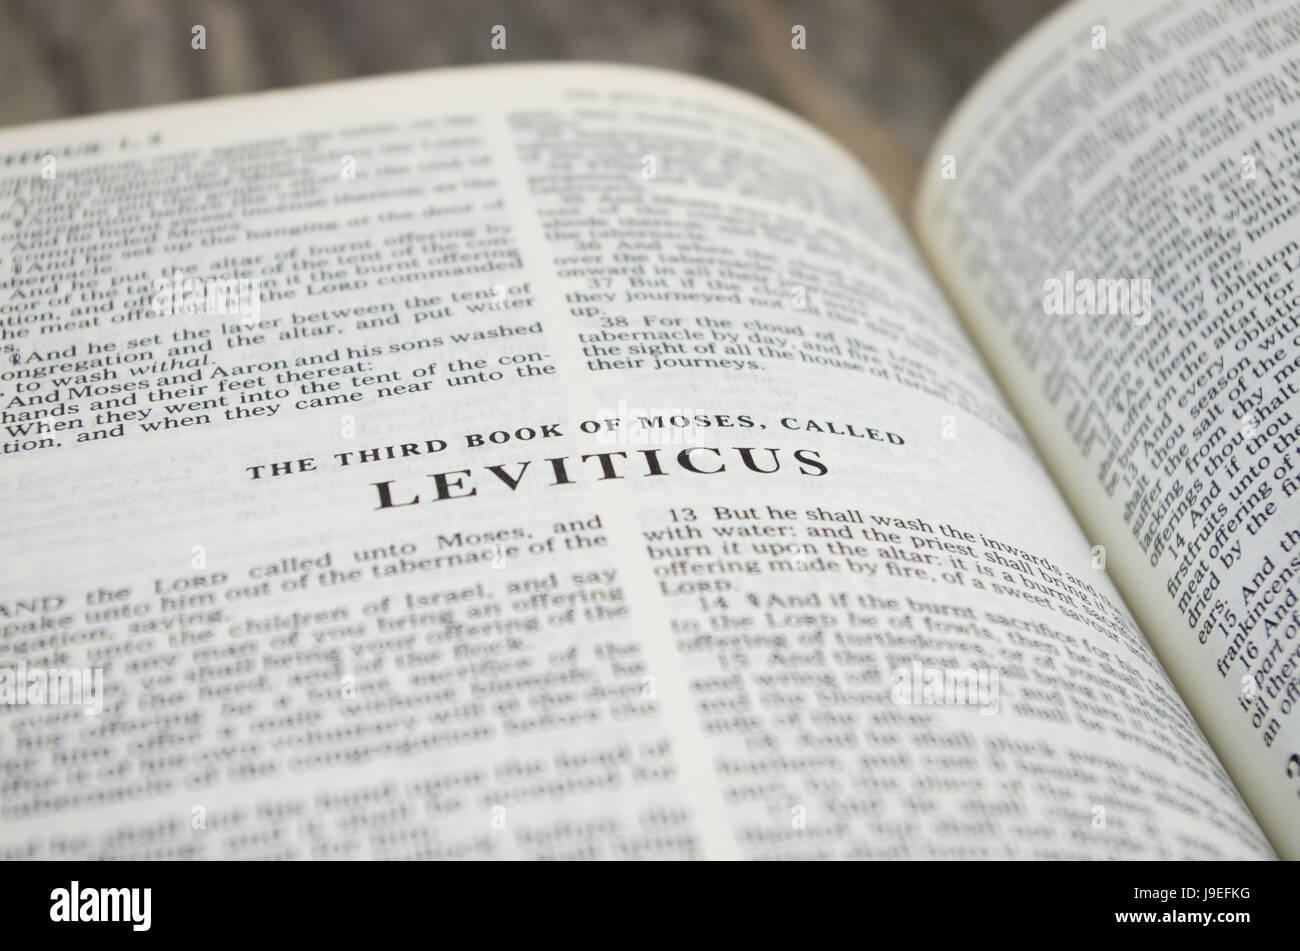 Title page for the book of Leviticus in the Bible – King James Version - Stock Image